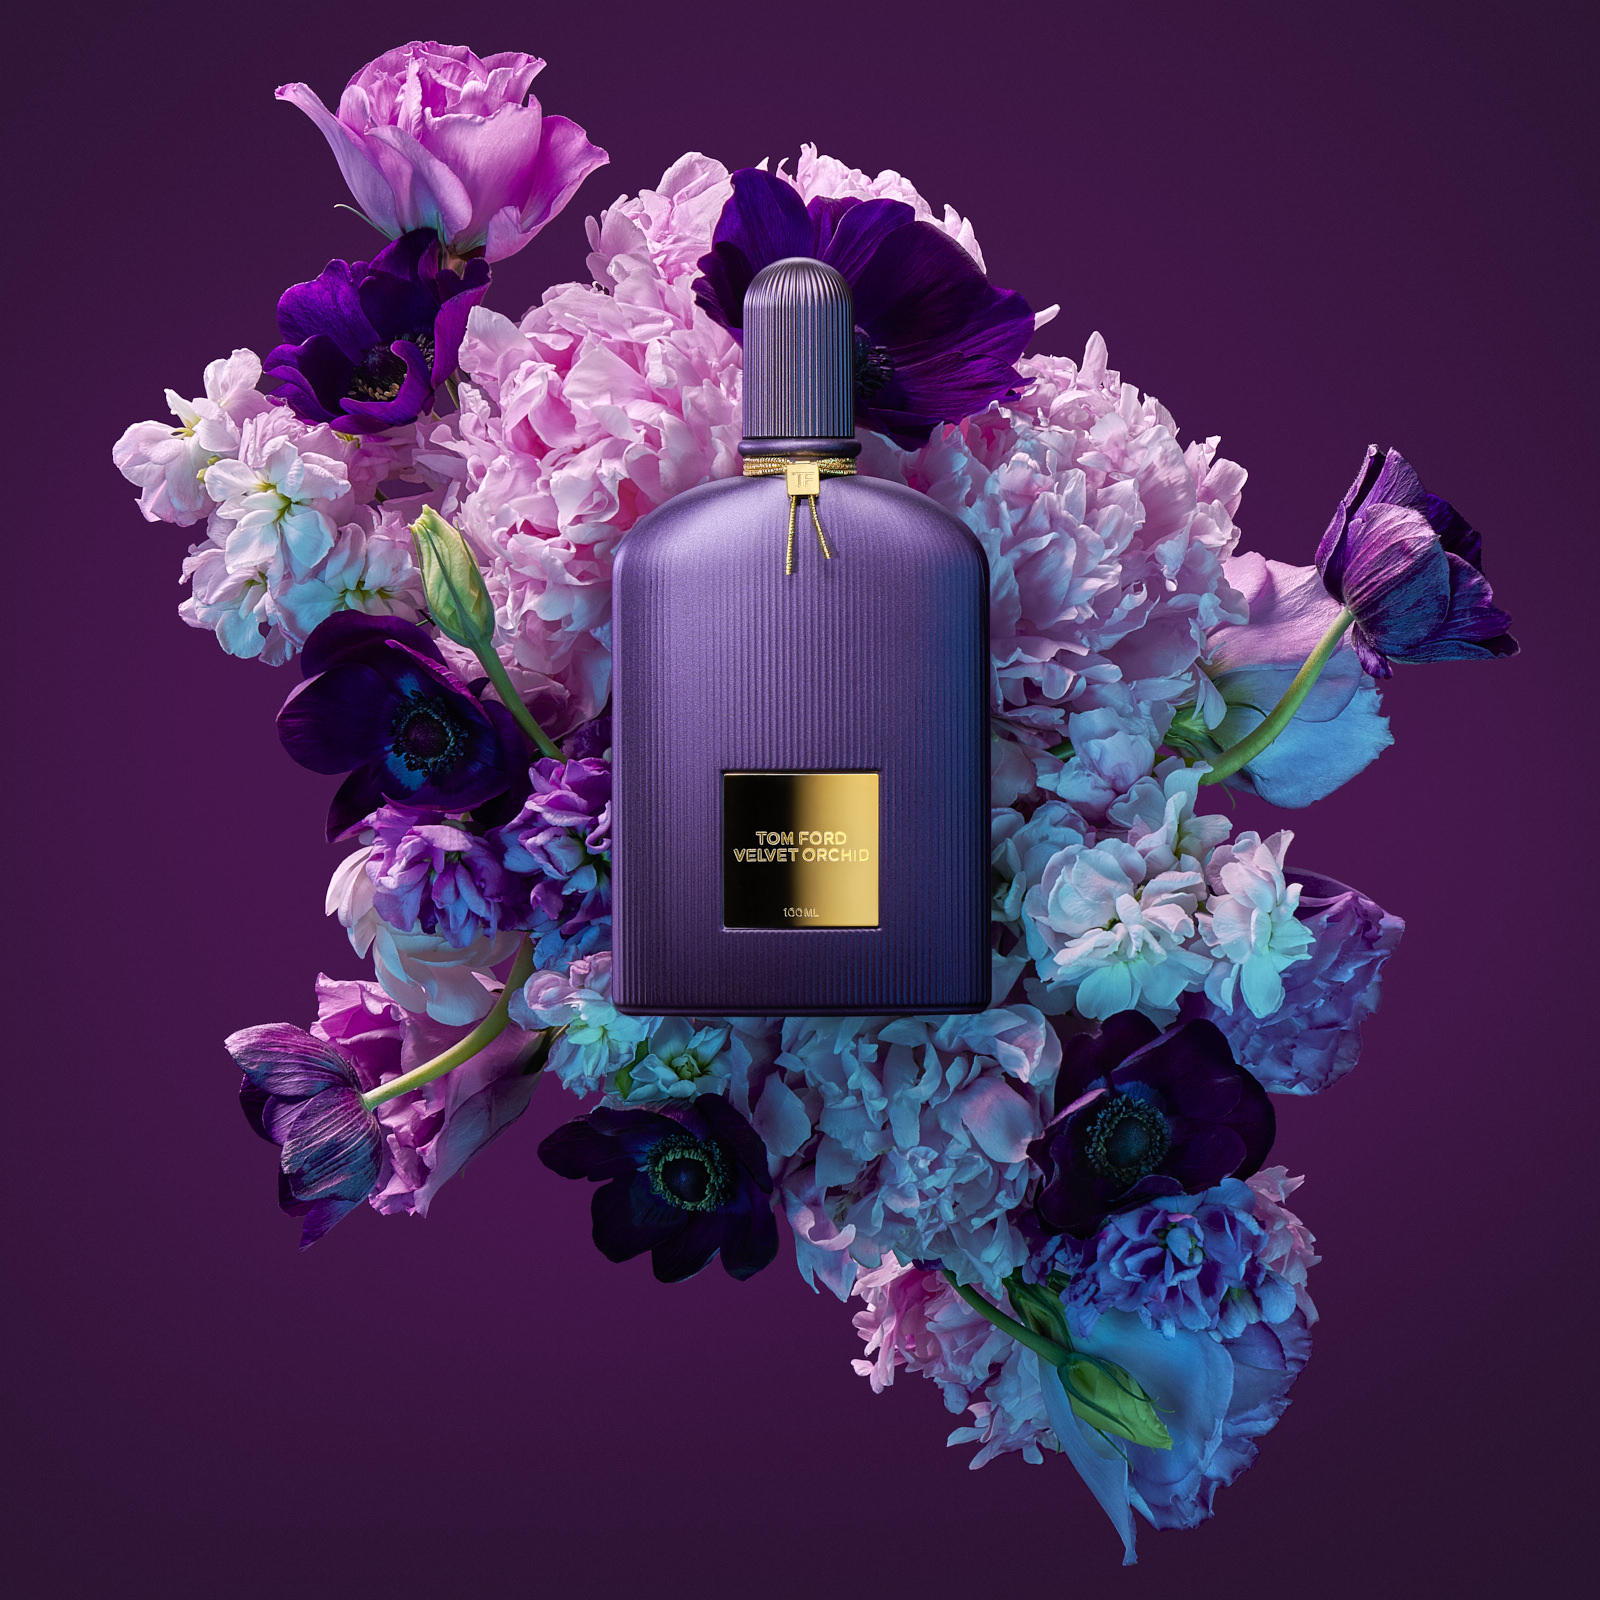 Tom Ford Velvet Orchid  by Luxury Brand Photographer Matthew Roharik Los AngelesCOMP8